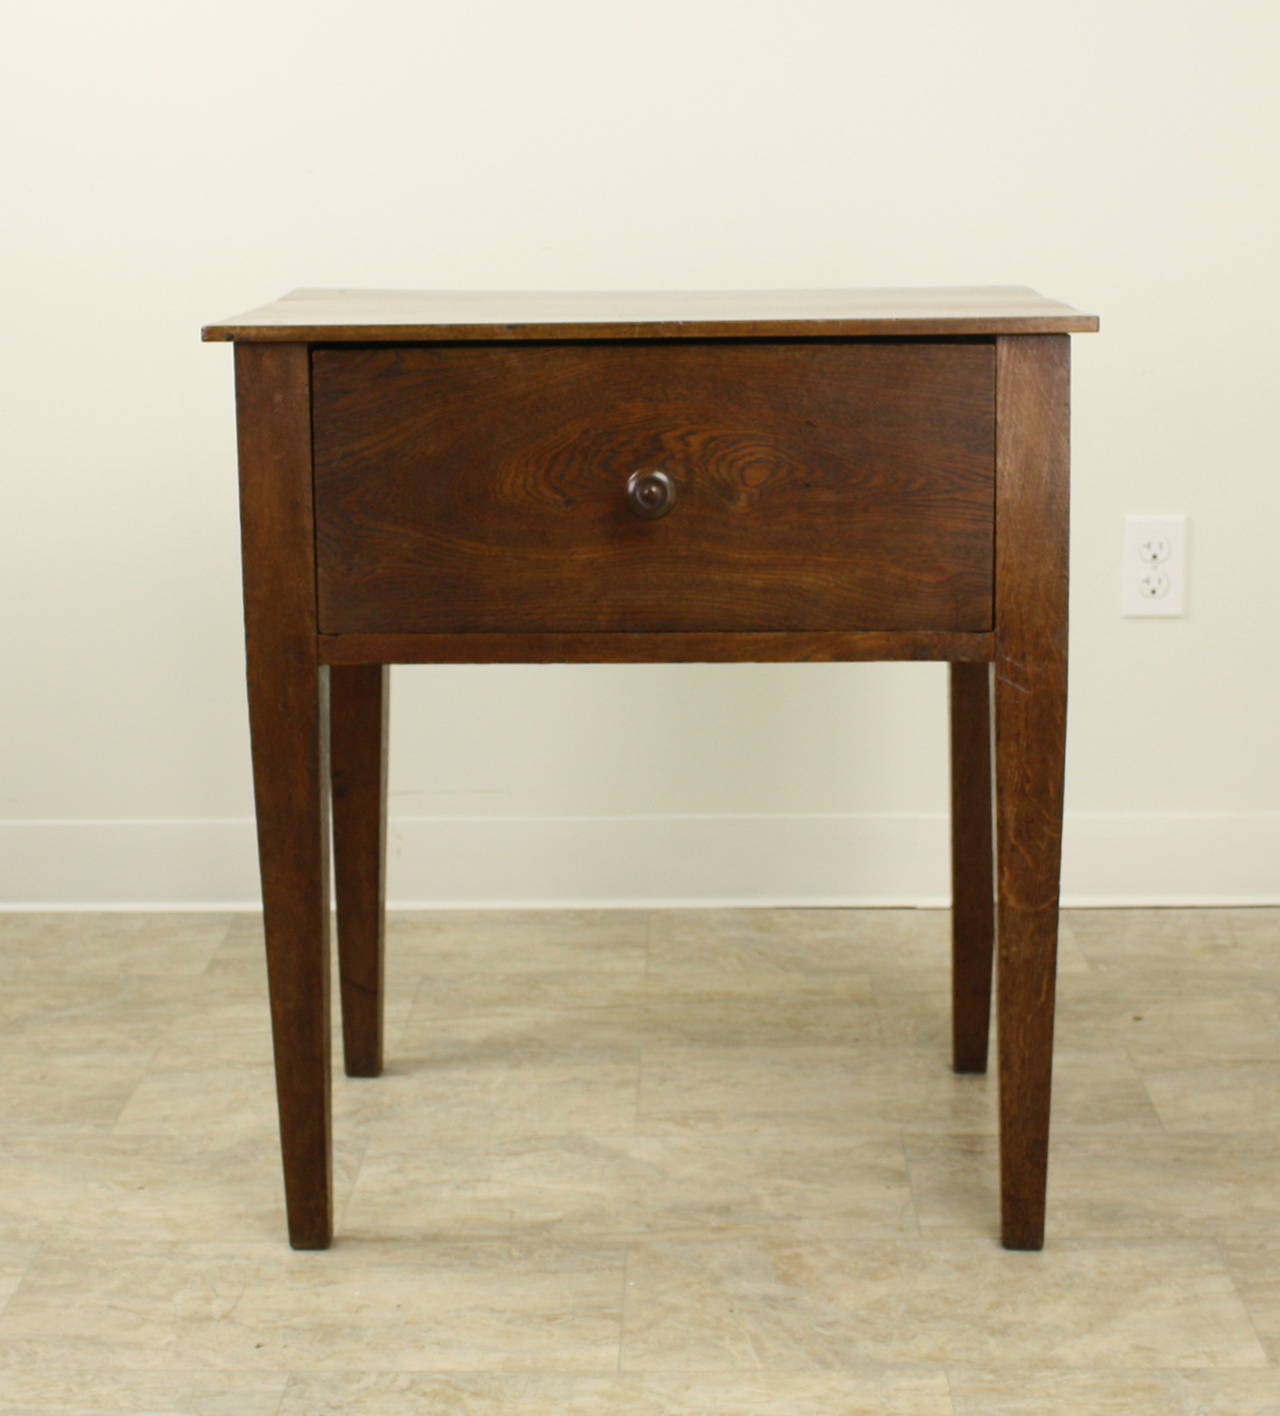 Antique walnut and oak side table for sale at 1stdibs for Walnut side table